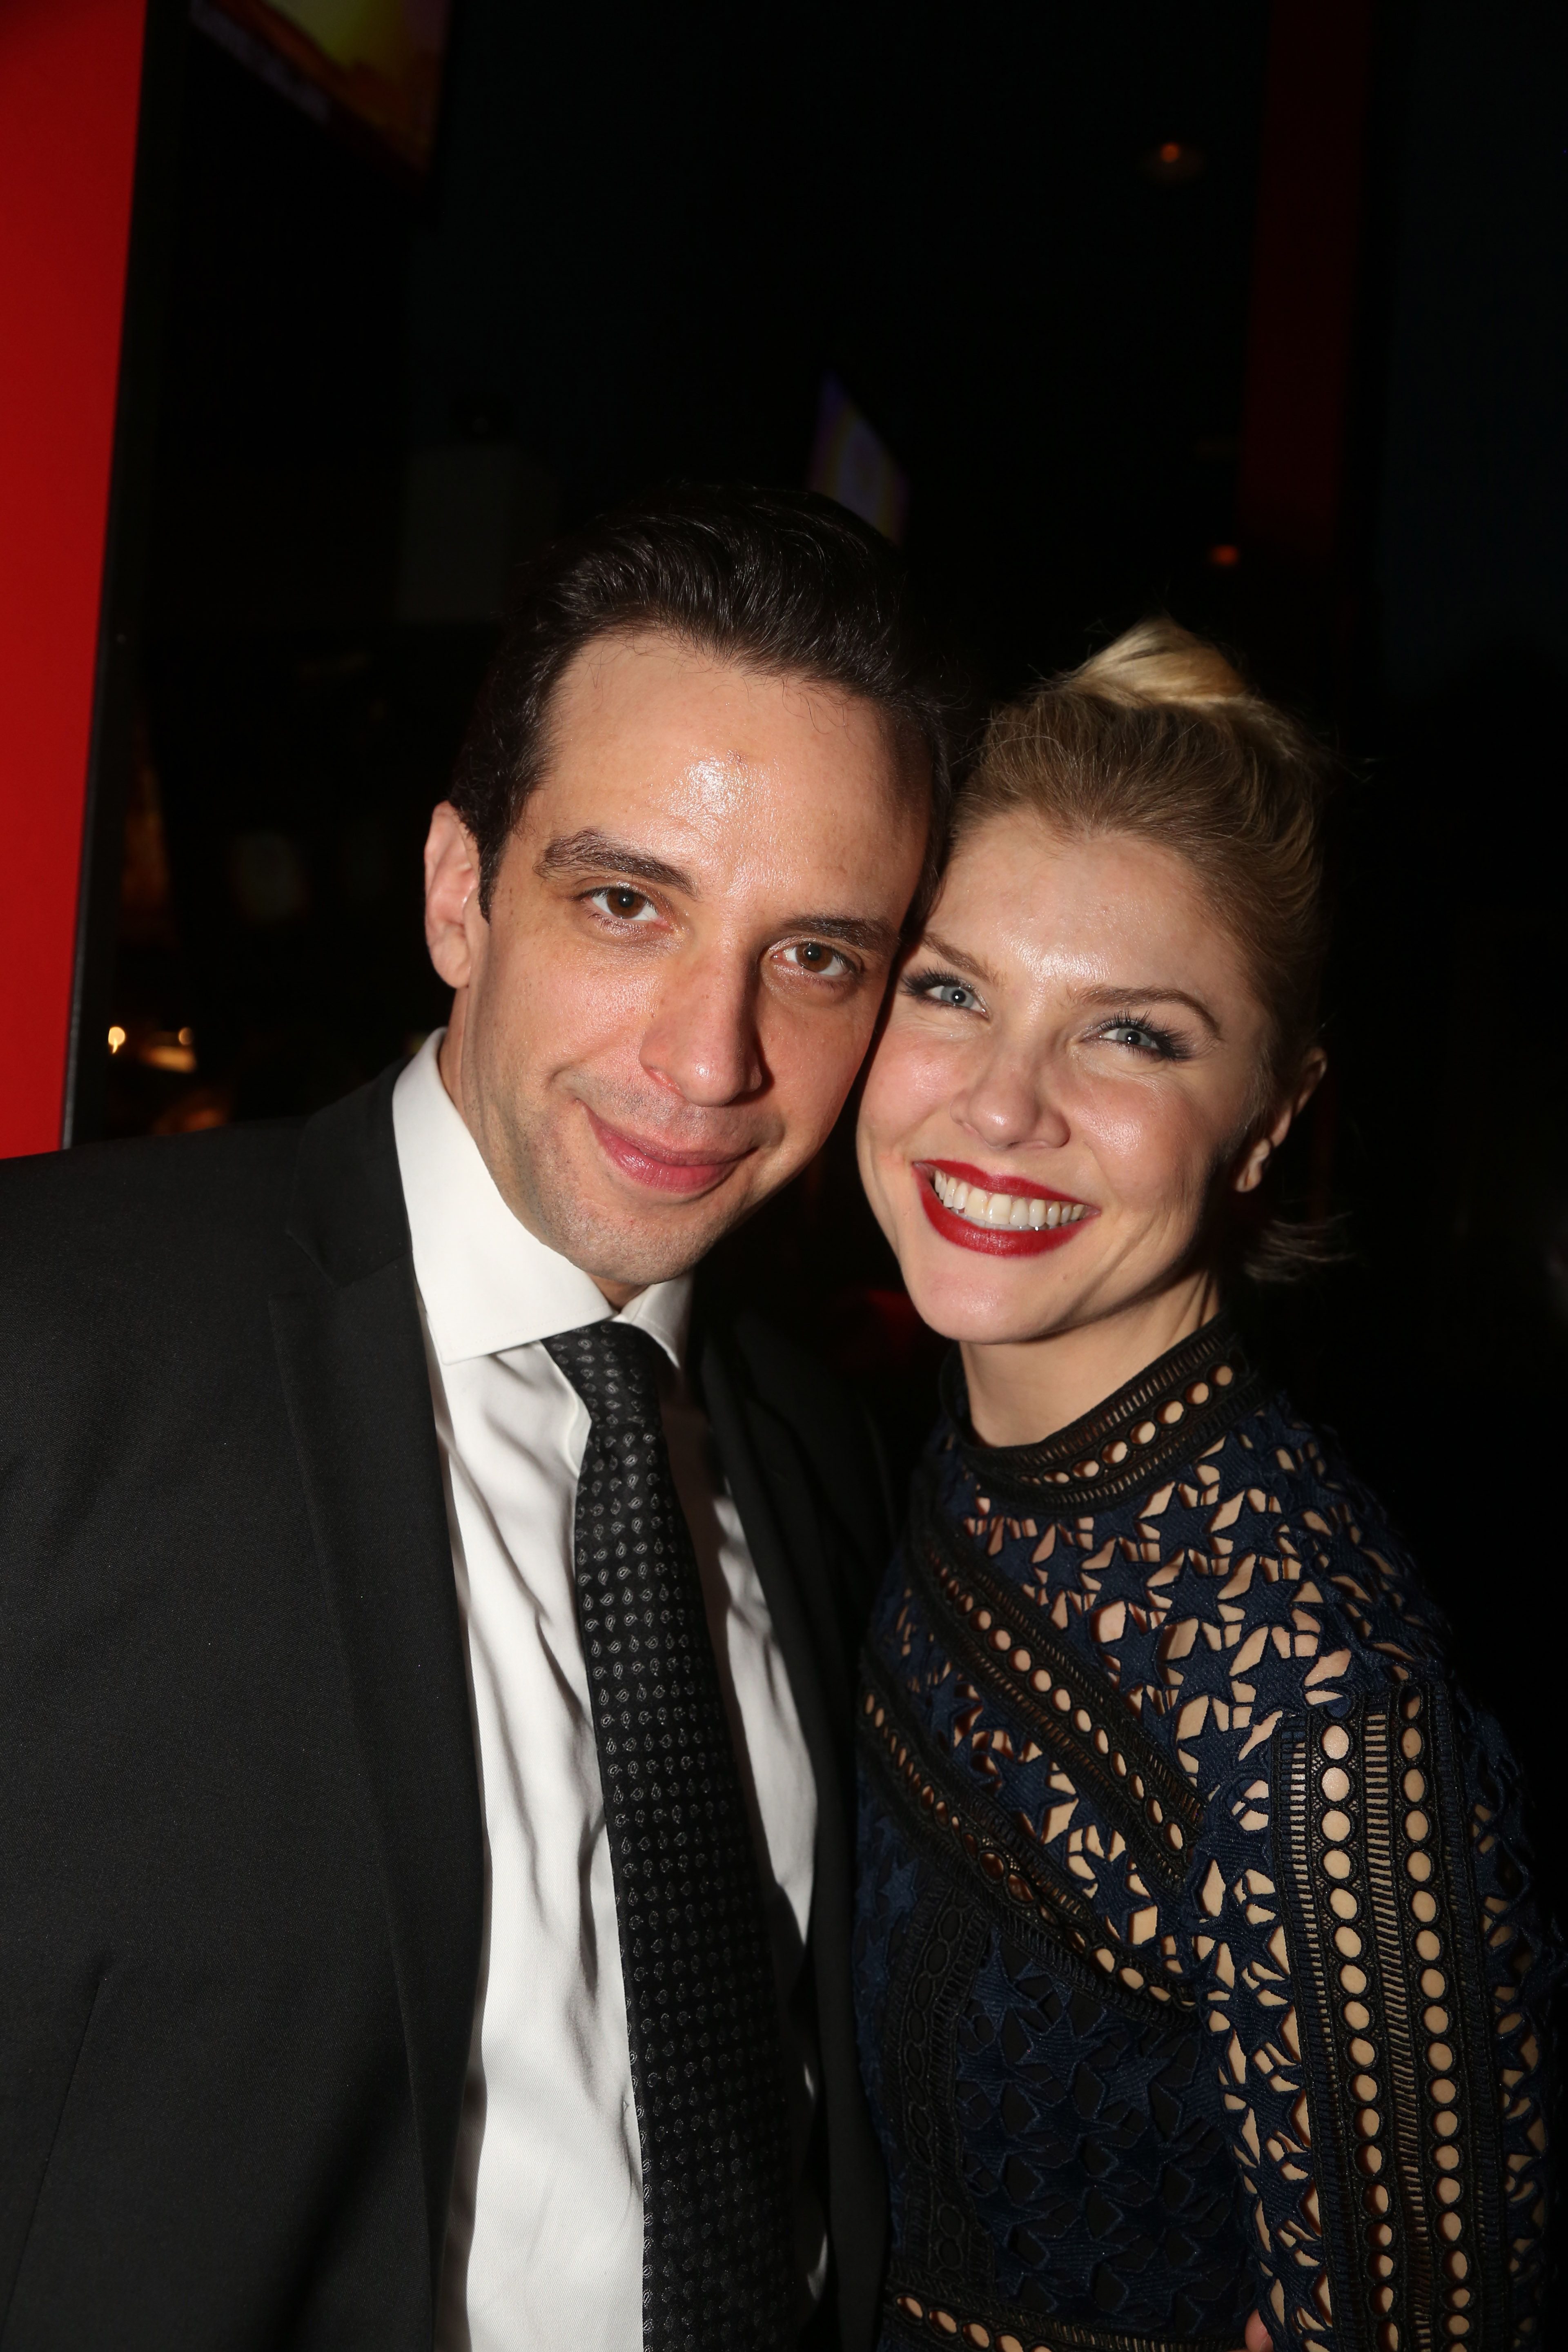 """Nick Cordero and Amanda Kloots pose at the after party for Manhattan Concert Production's Broadway Series """"Crazy For You"""" One Night Only Production at Planet Hollywood Times Square on February 19, 2017 